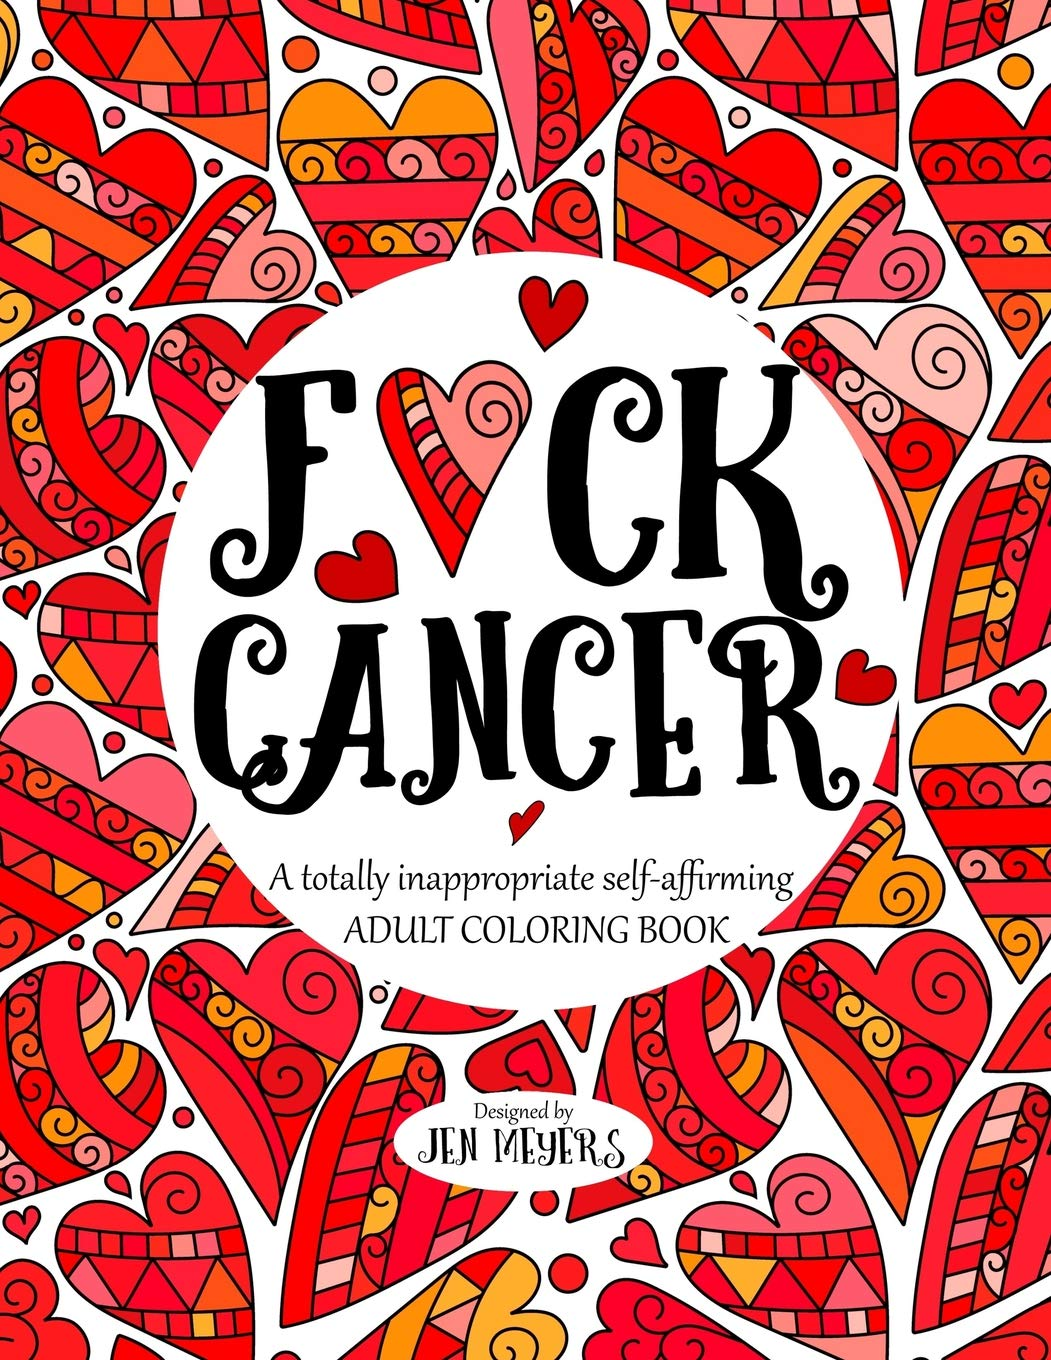 Amazon.com: F*ck Cancer: A totally inappropriate self ...